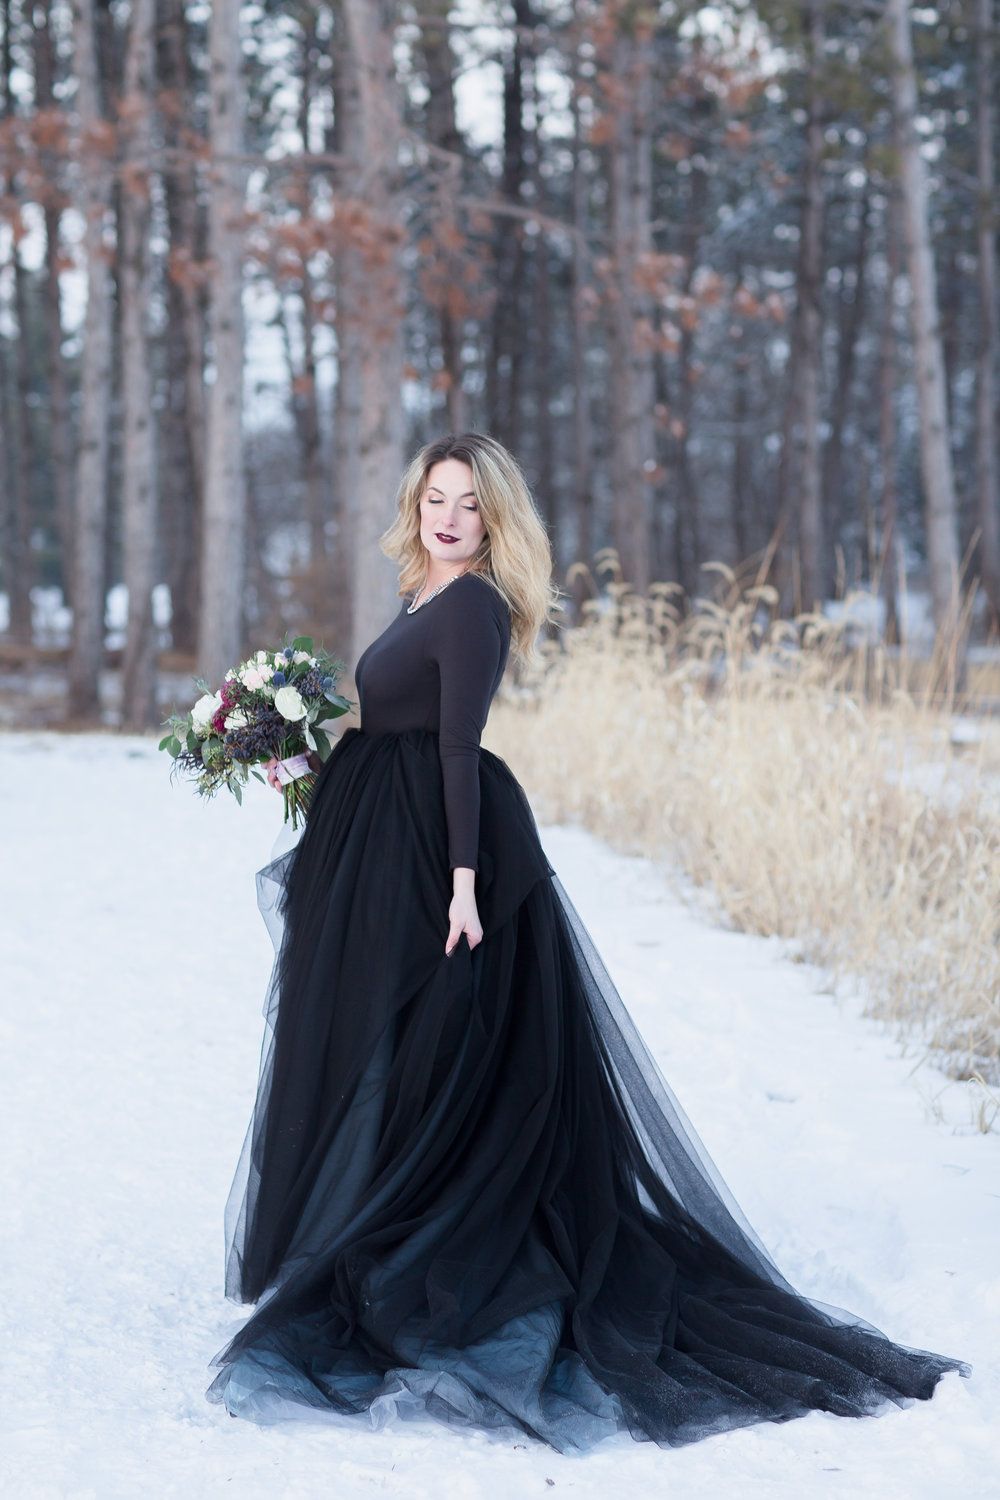 black-wedding-dress-boho-shoot-winter.jpg